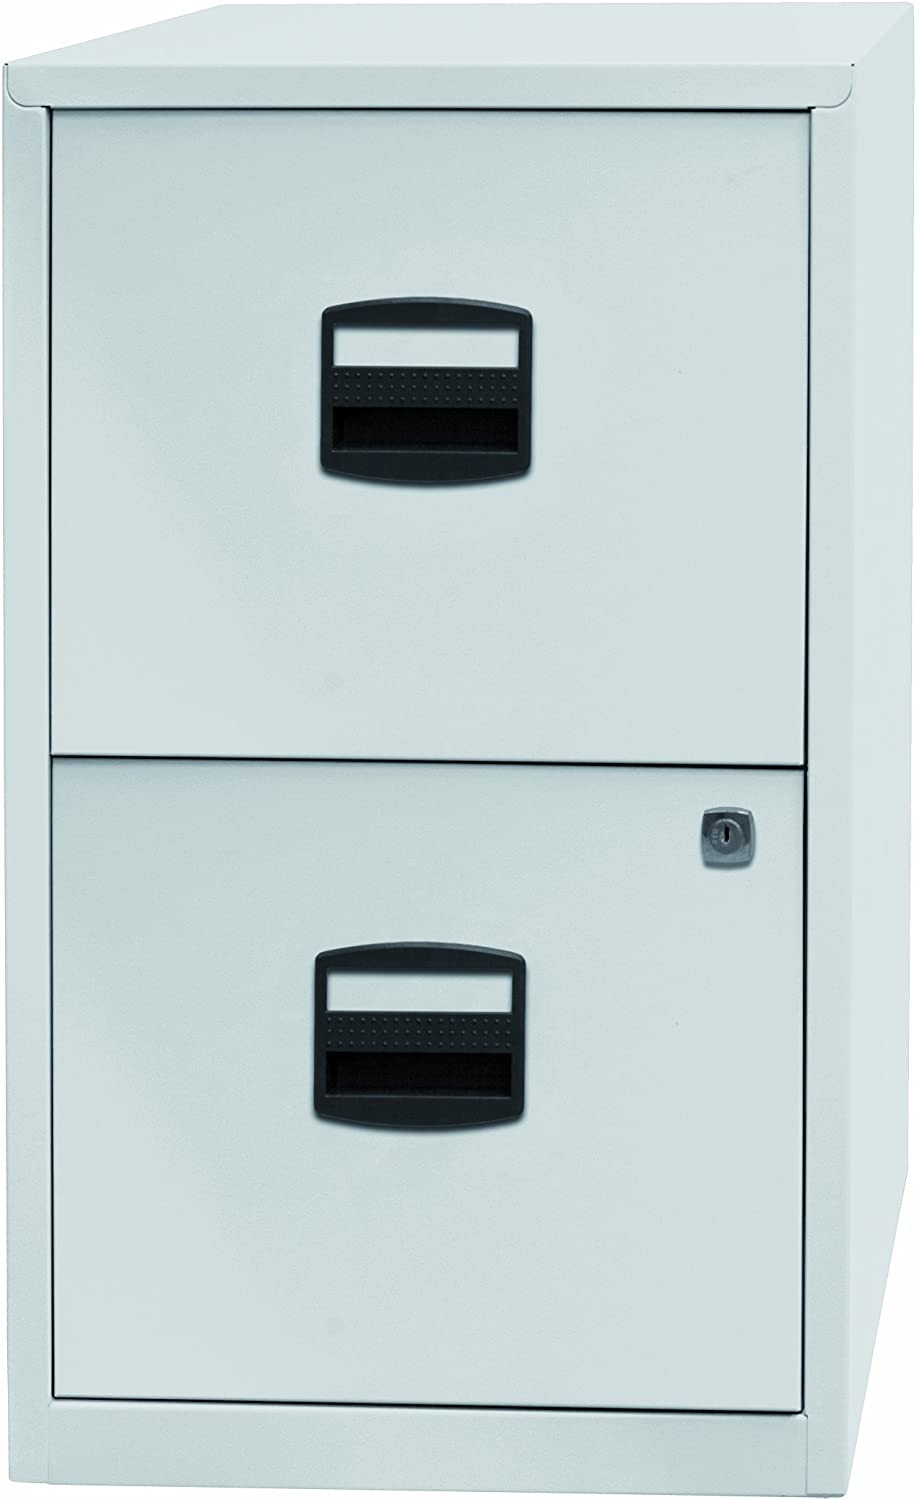 Mobile Lateral Filing Cabinet - Wheels Rolling Filing Cabinet, Printer Stand with Open Storage Shelves for Office and Home (White-bt)